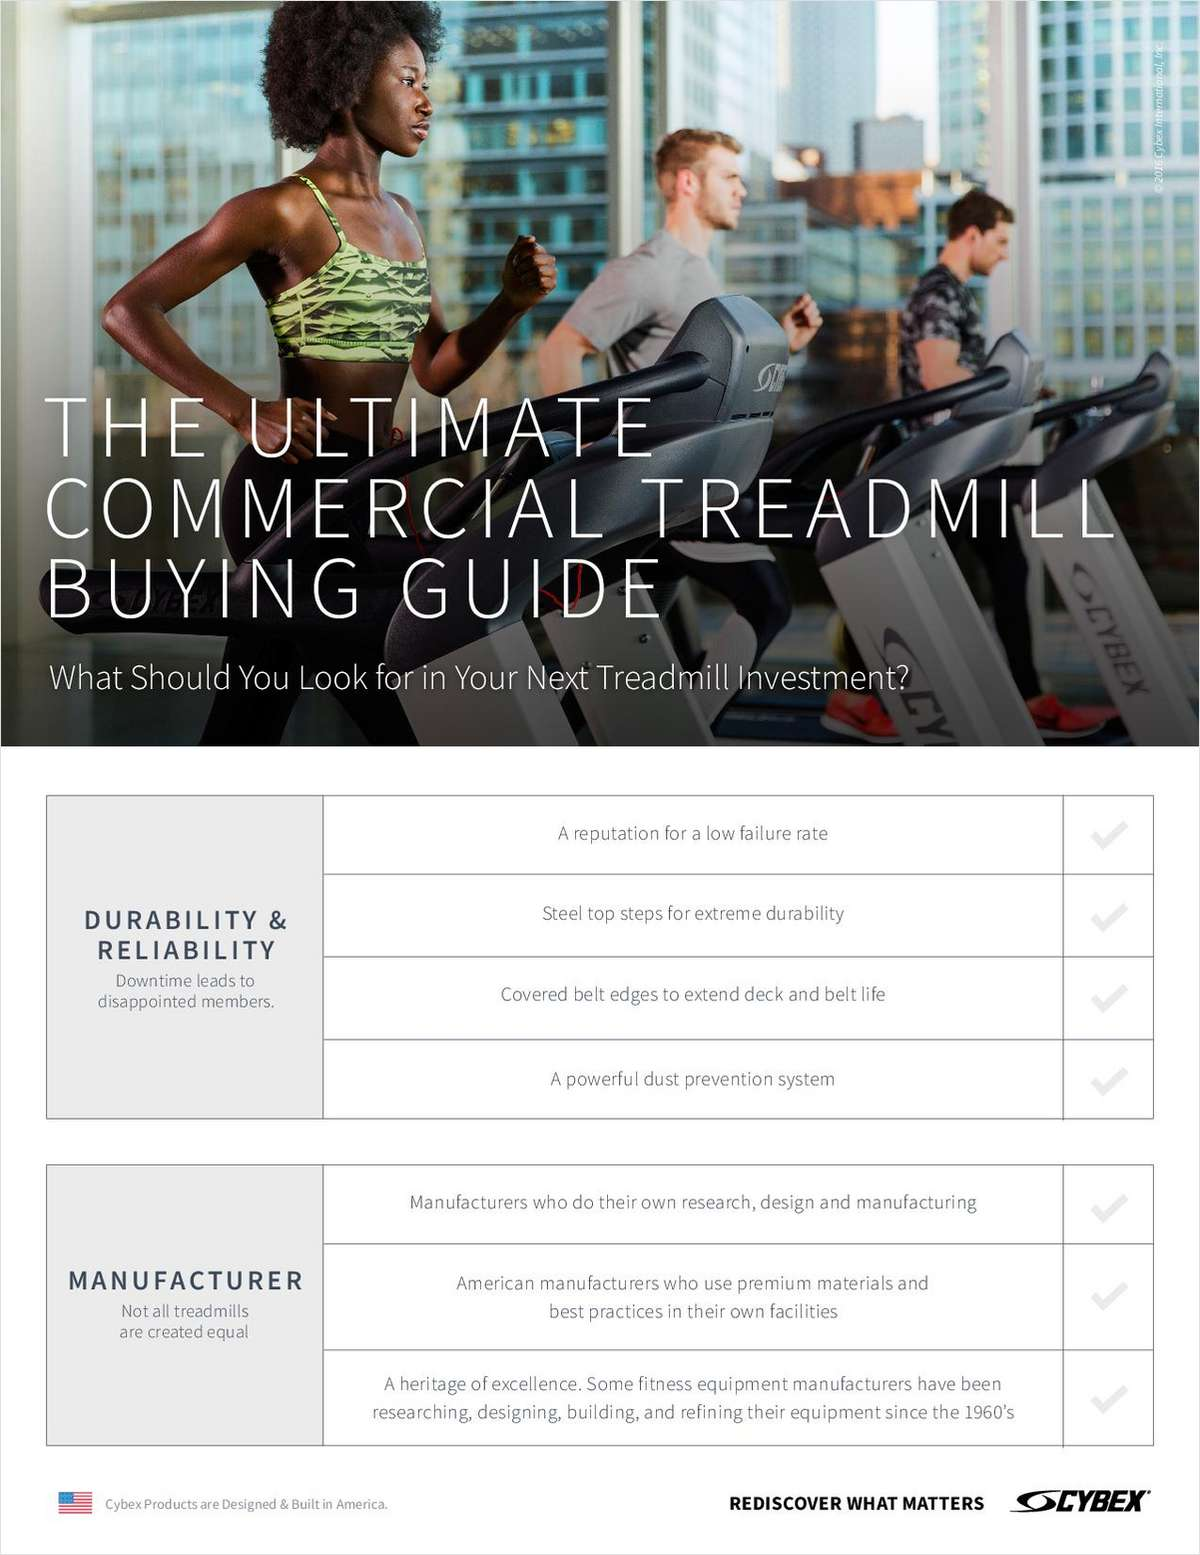 The Ultimate Commercial Treadmill Buying Guide